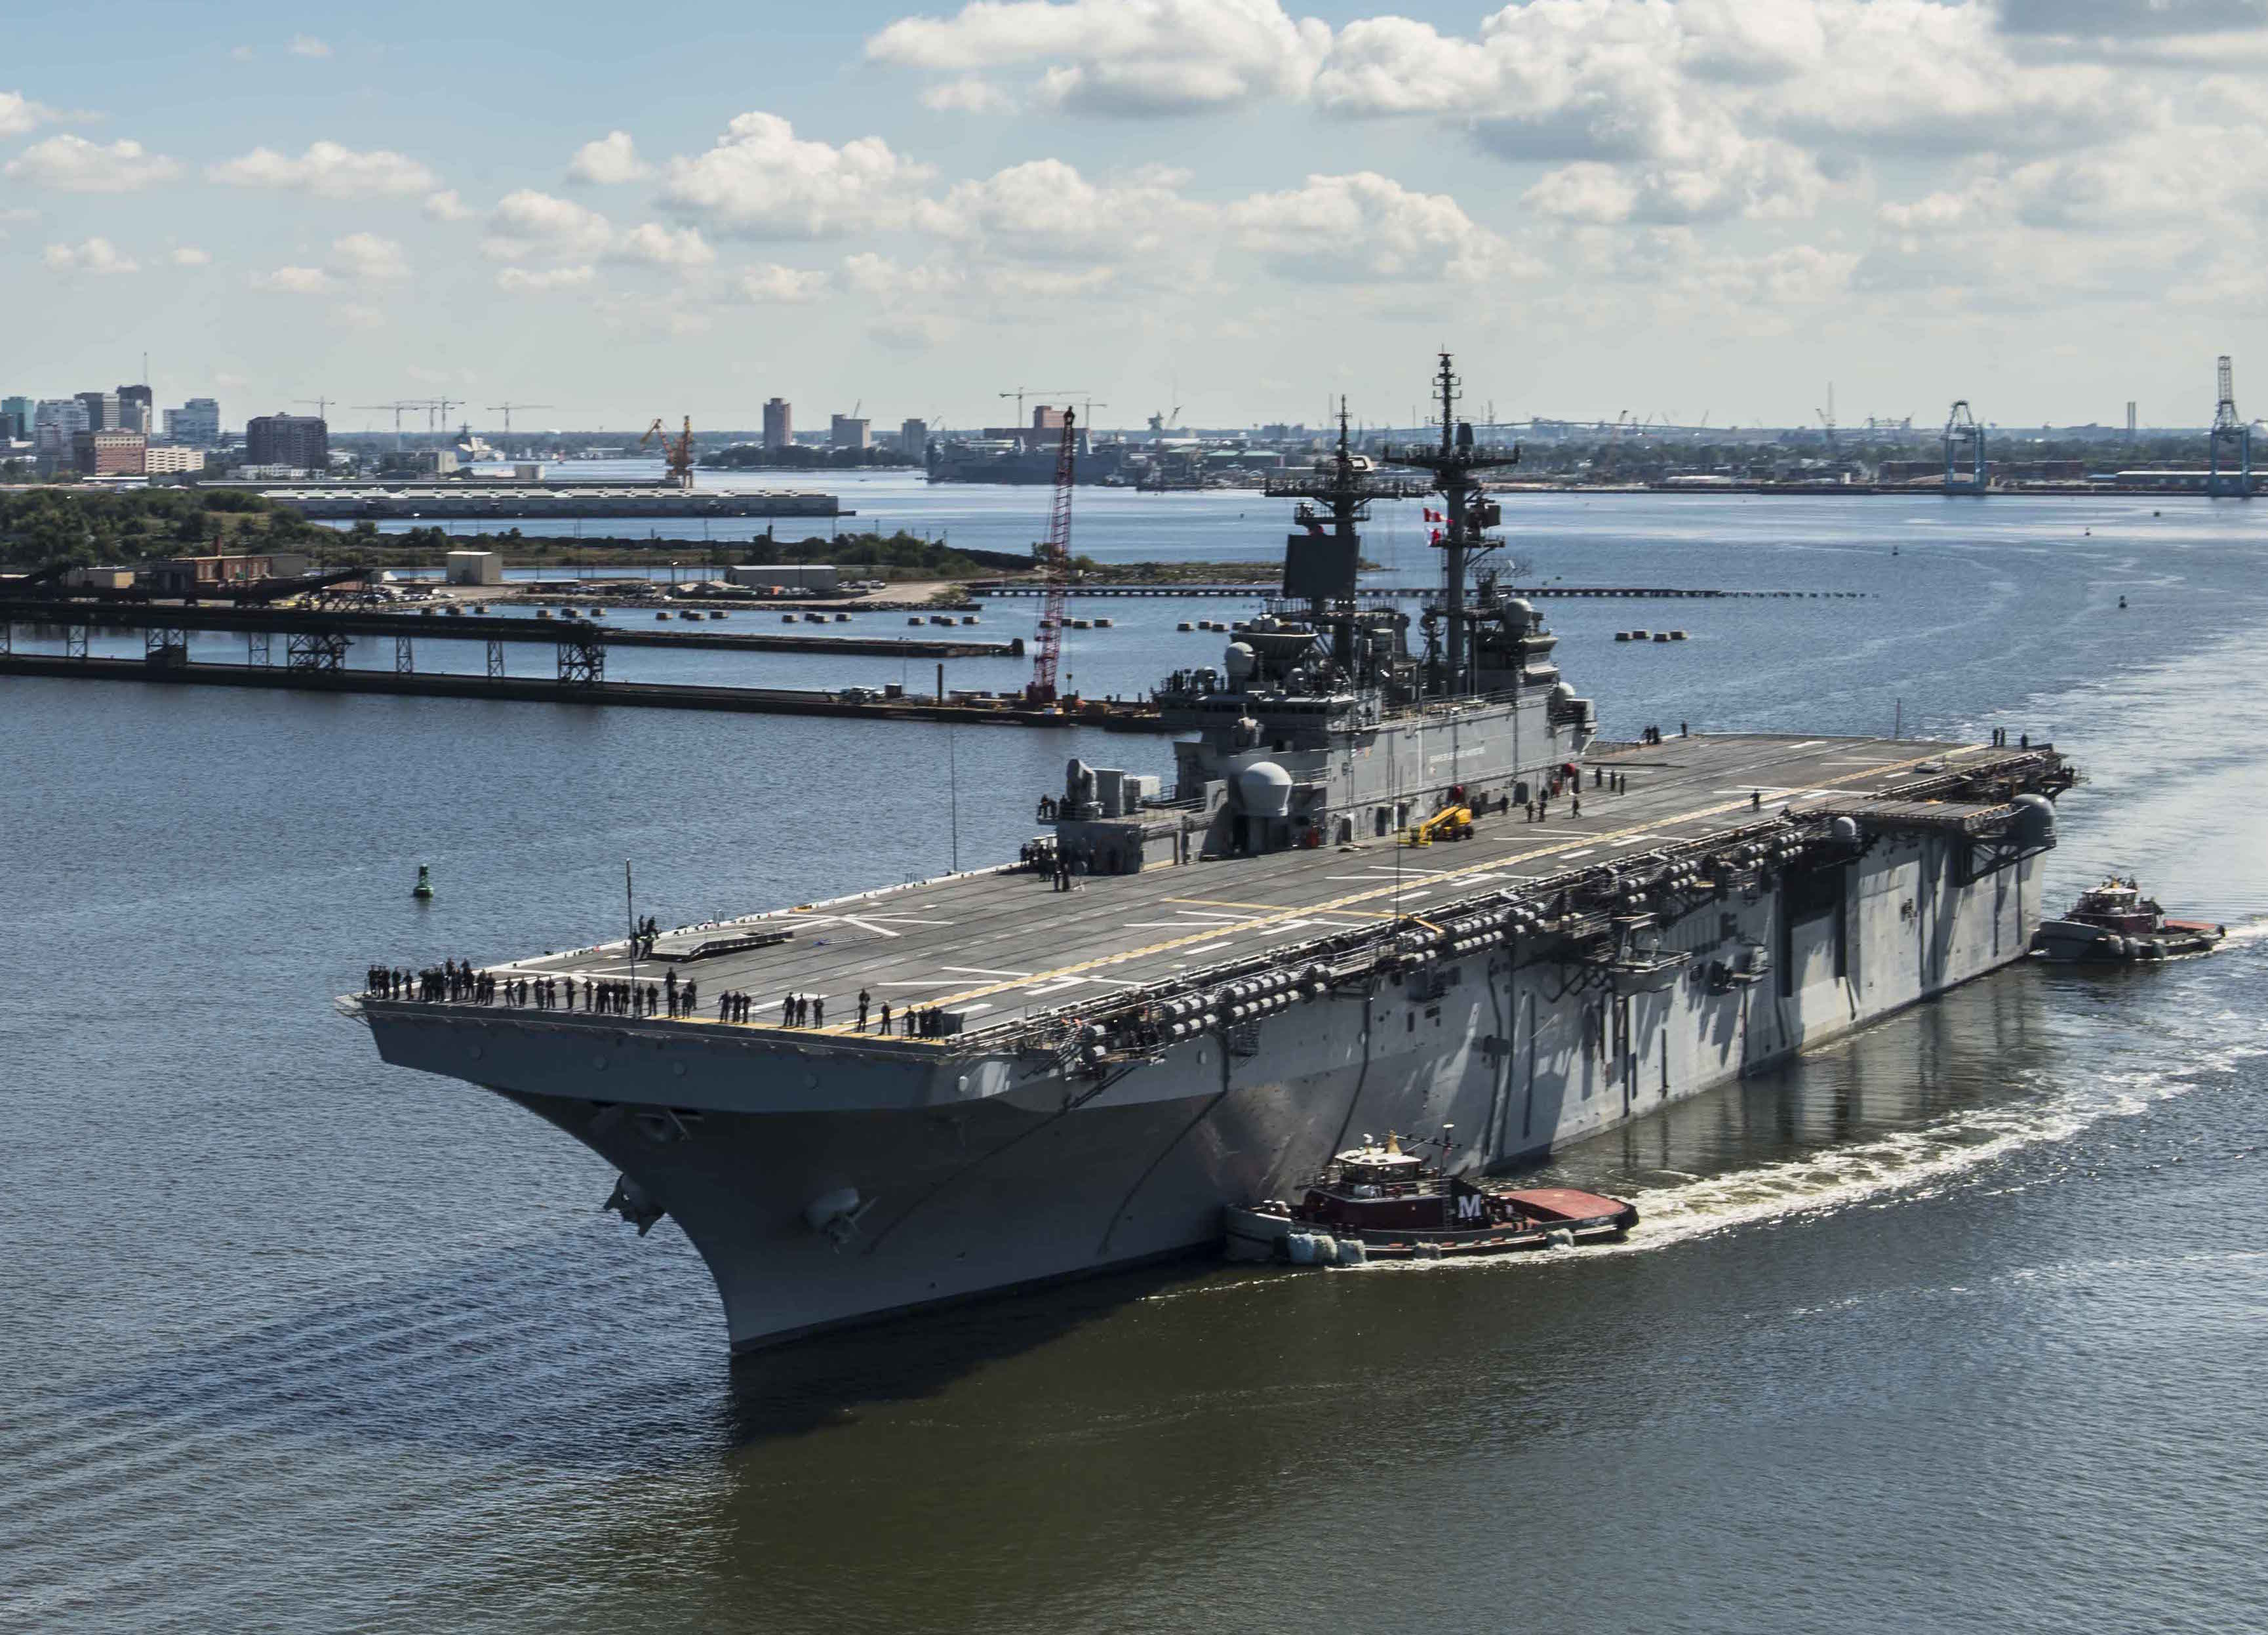 USS Wasp (LHD 1) transits the Elizabeth River from BAE Systems Norfolk to Naval Station Norfolk. Wasp completed a year-long dry dock phased maintenance availability period which included upgrades to her combat systems, engineering spaces and flight deck on Sept. 30, 2014. US Navy Photo